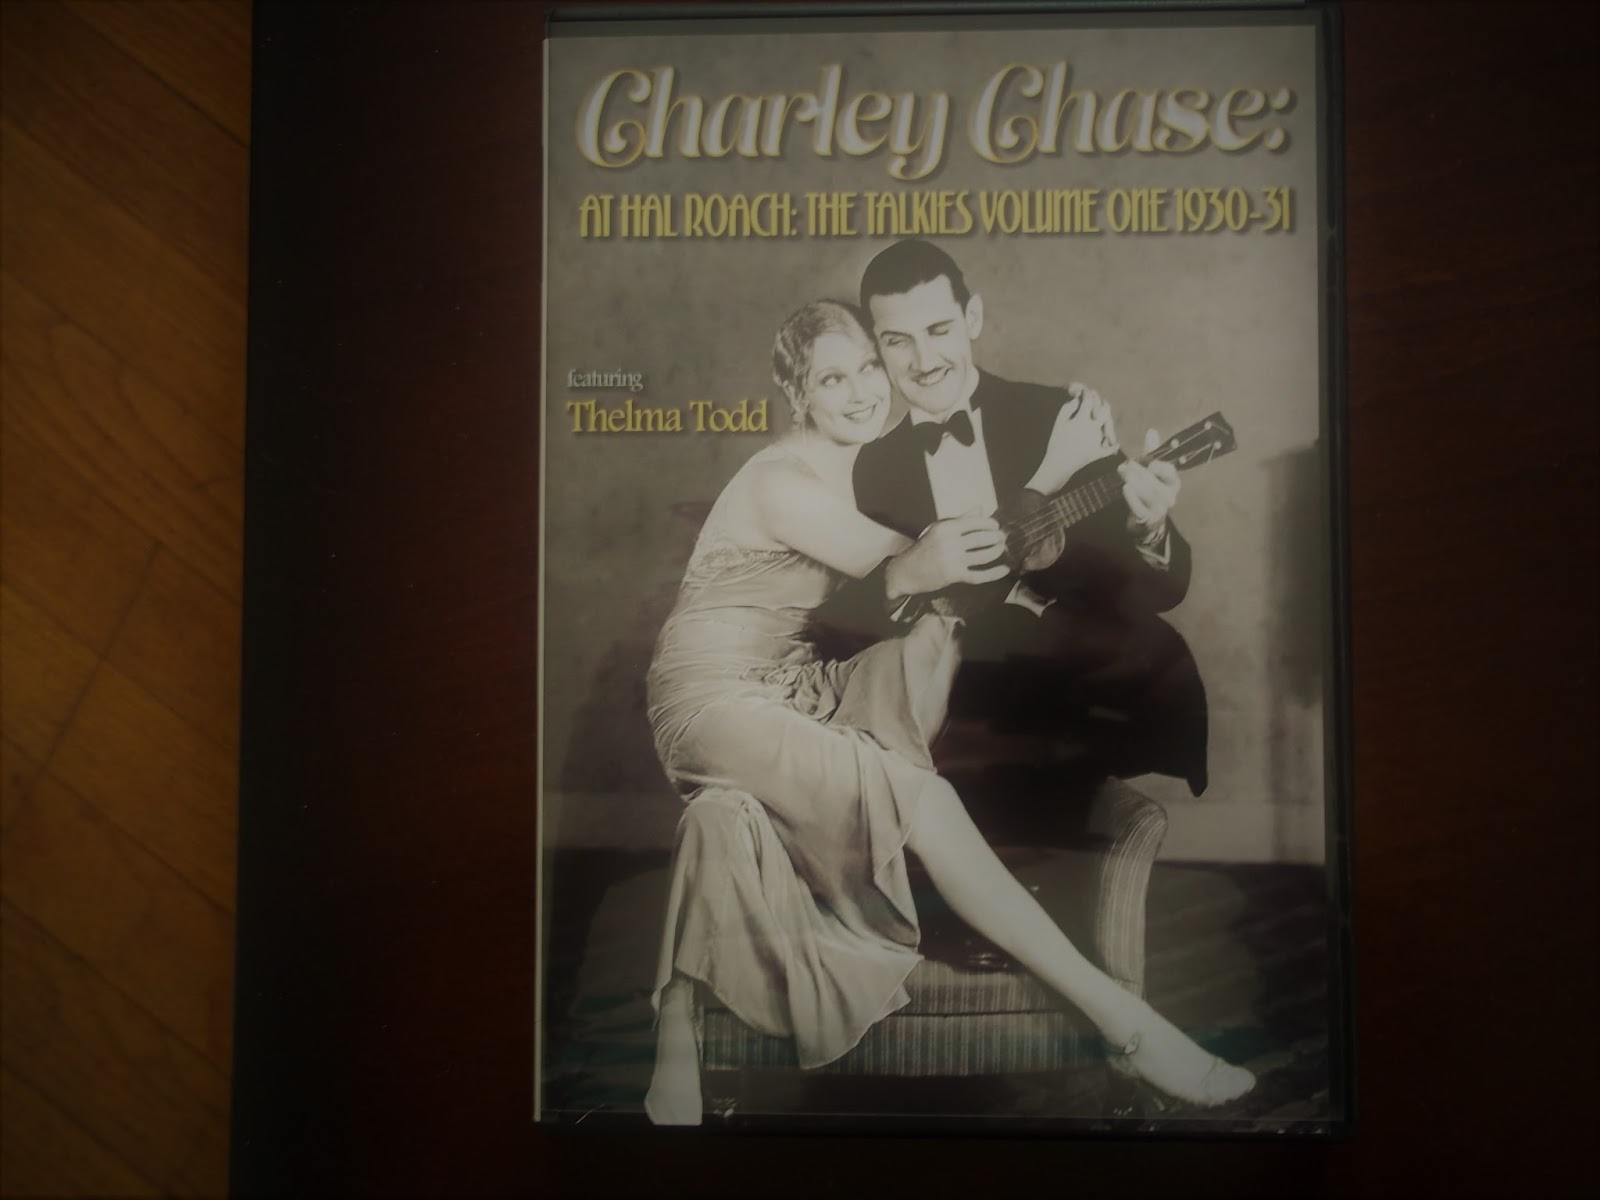 Charley chase on the set